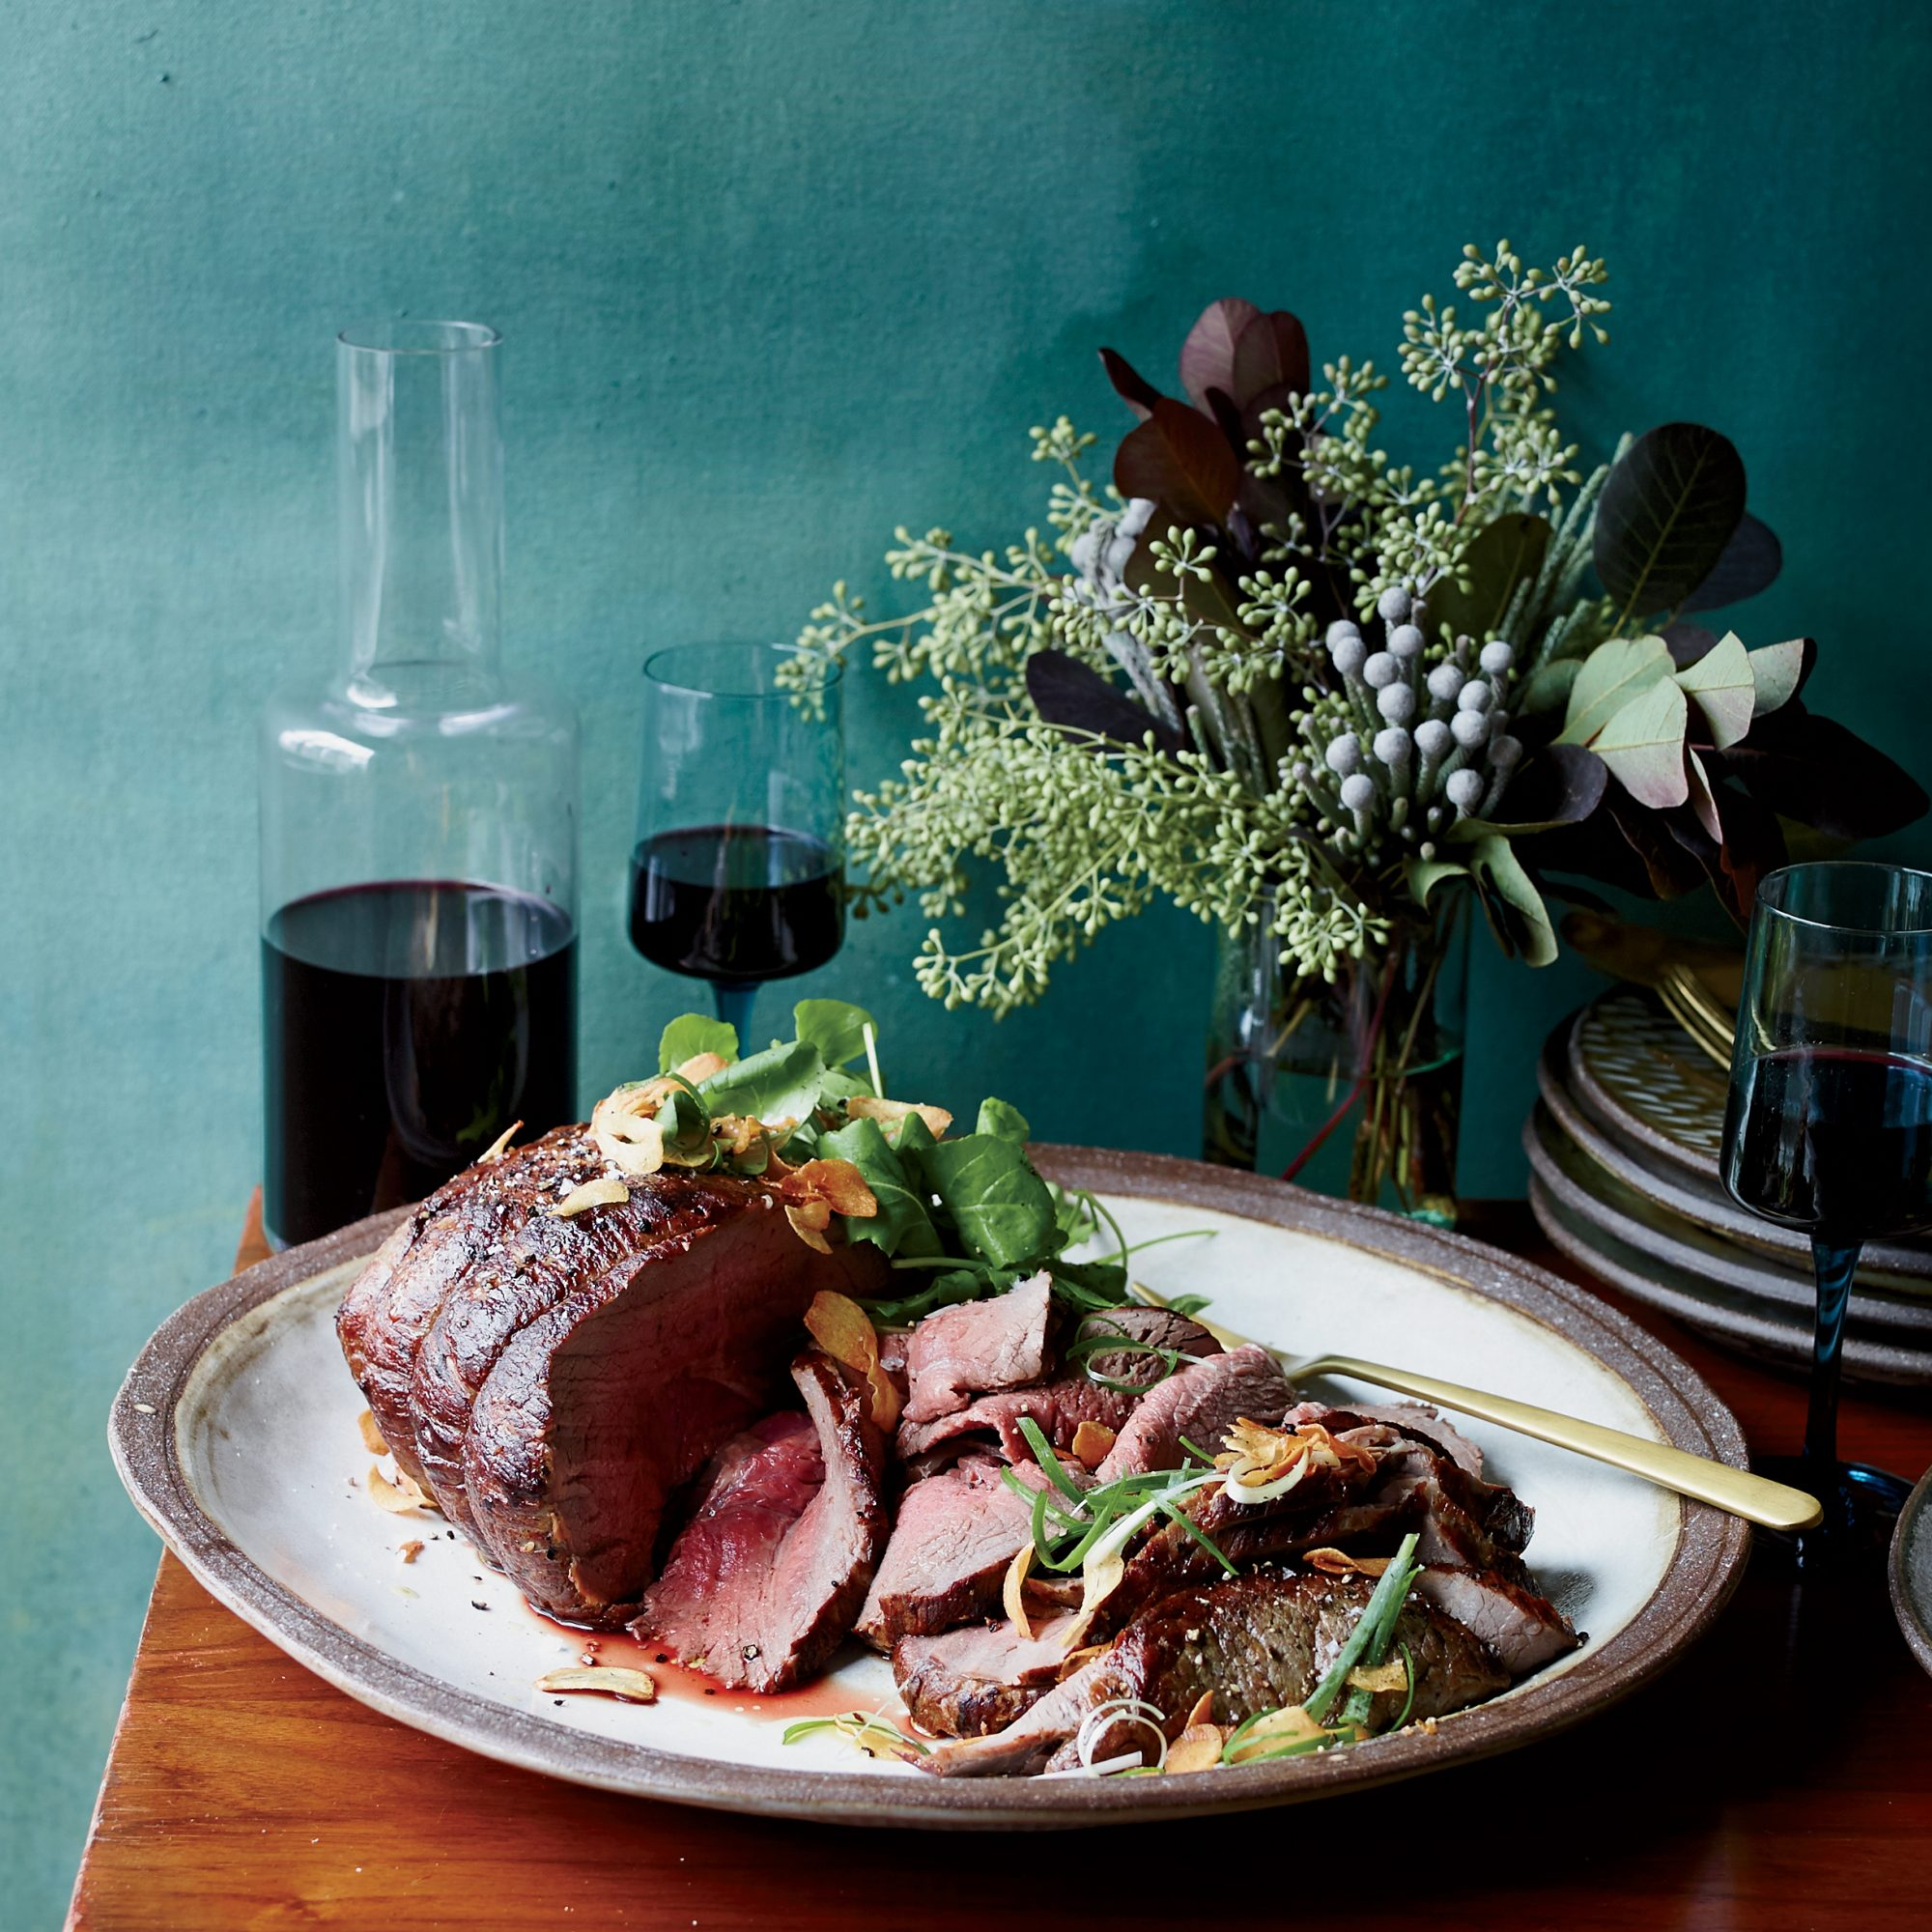 original-201412-r-dry-aged-roast-beef-with-fresh-hot-sauce.jpg